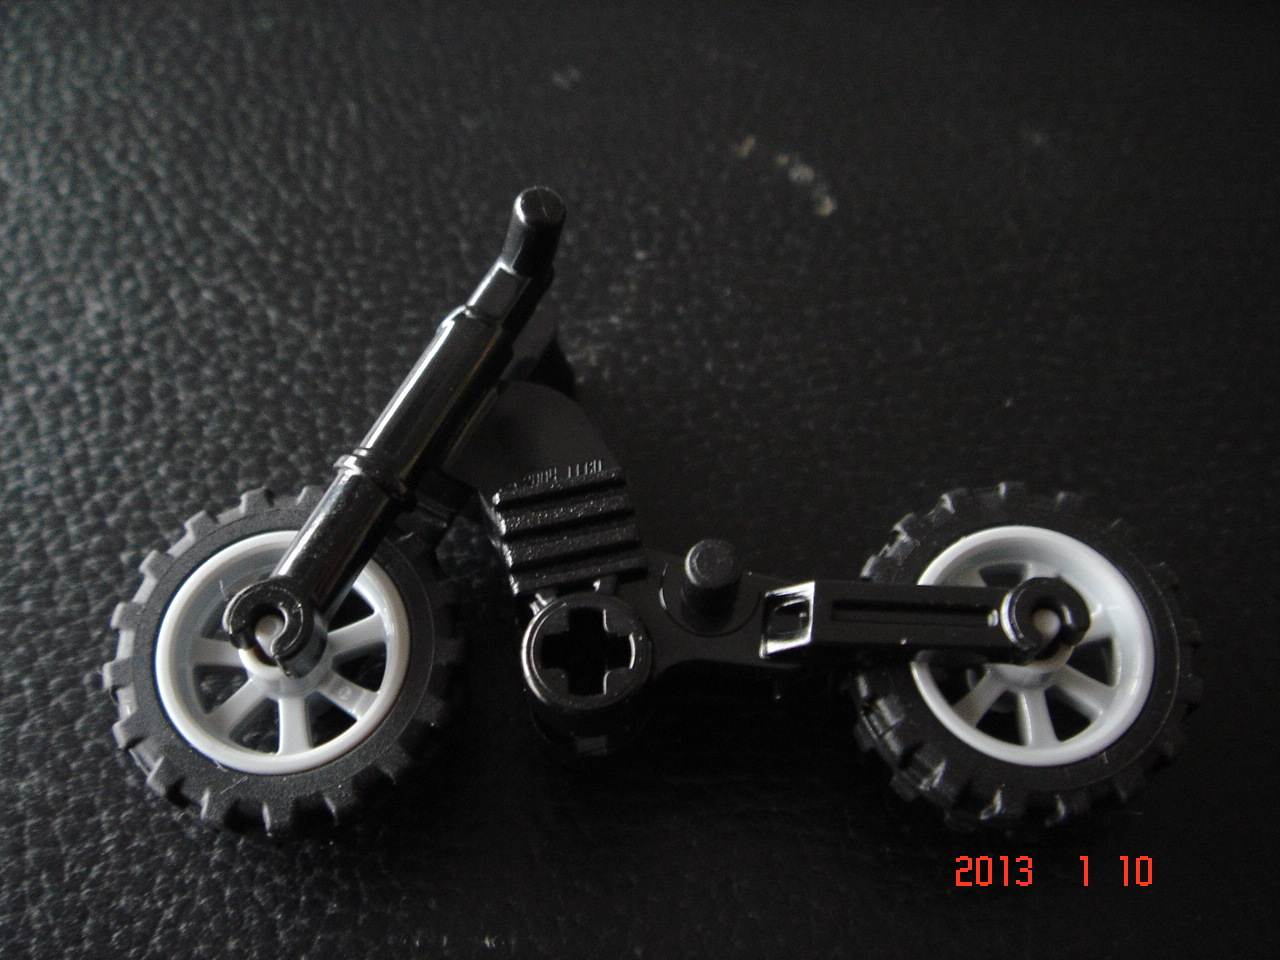 lego_bike_ucc-office_0110002.jpg